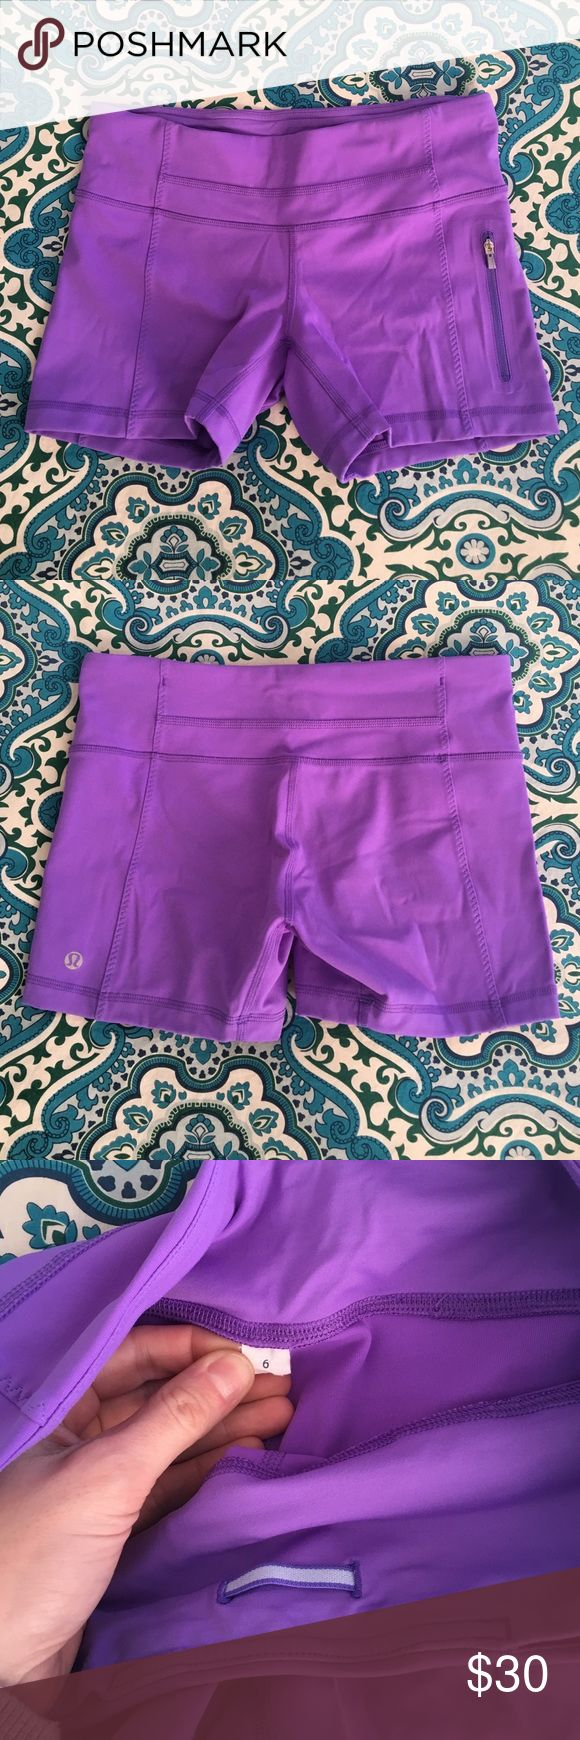 "Purple Lululemon running yoga shorts size 6 Pair of purple Lululemon running shorts in excellent gently-used condition. Zippered pocket on the left leg and two hidden waistband pockets. Inseam measures 3.75"". lululemon athletica Shorts"